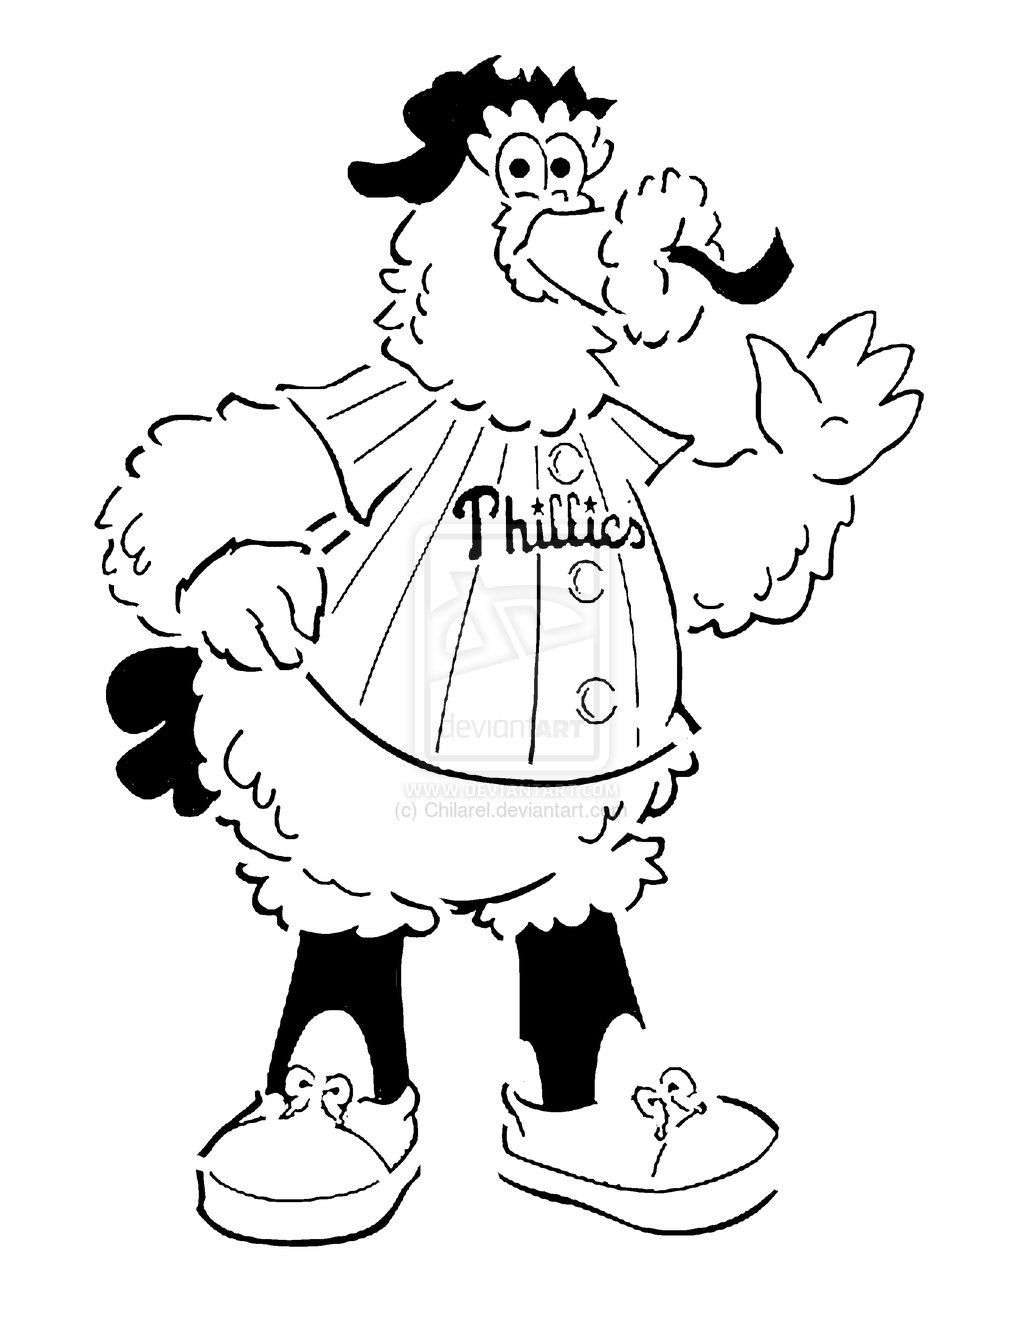 mascot coloring pages | Philadelphia Phillies Phanatic Coloring Pages ...